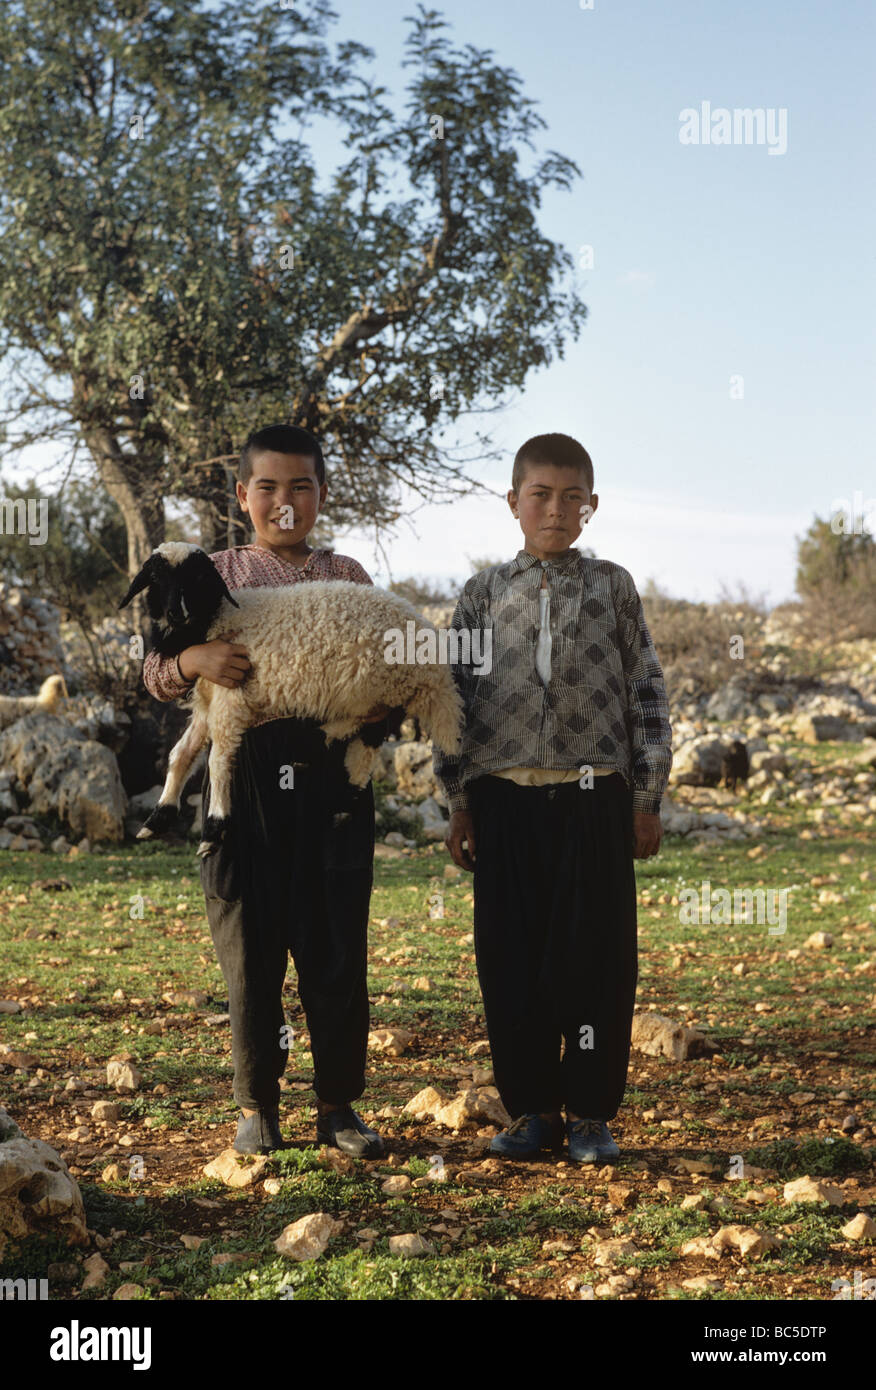 village-kids-with-a-lamb-at-kanytelis-an